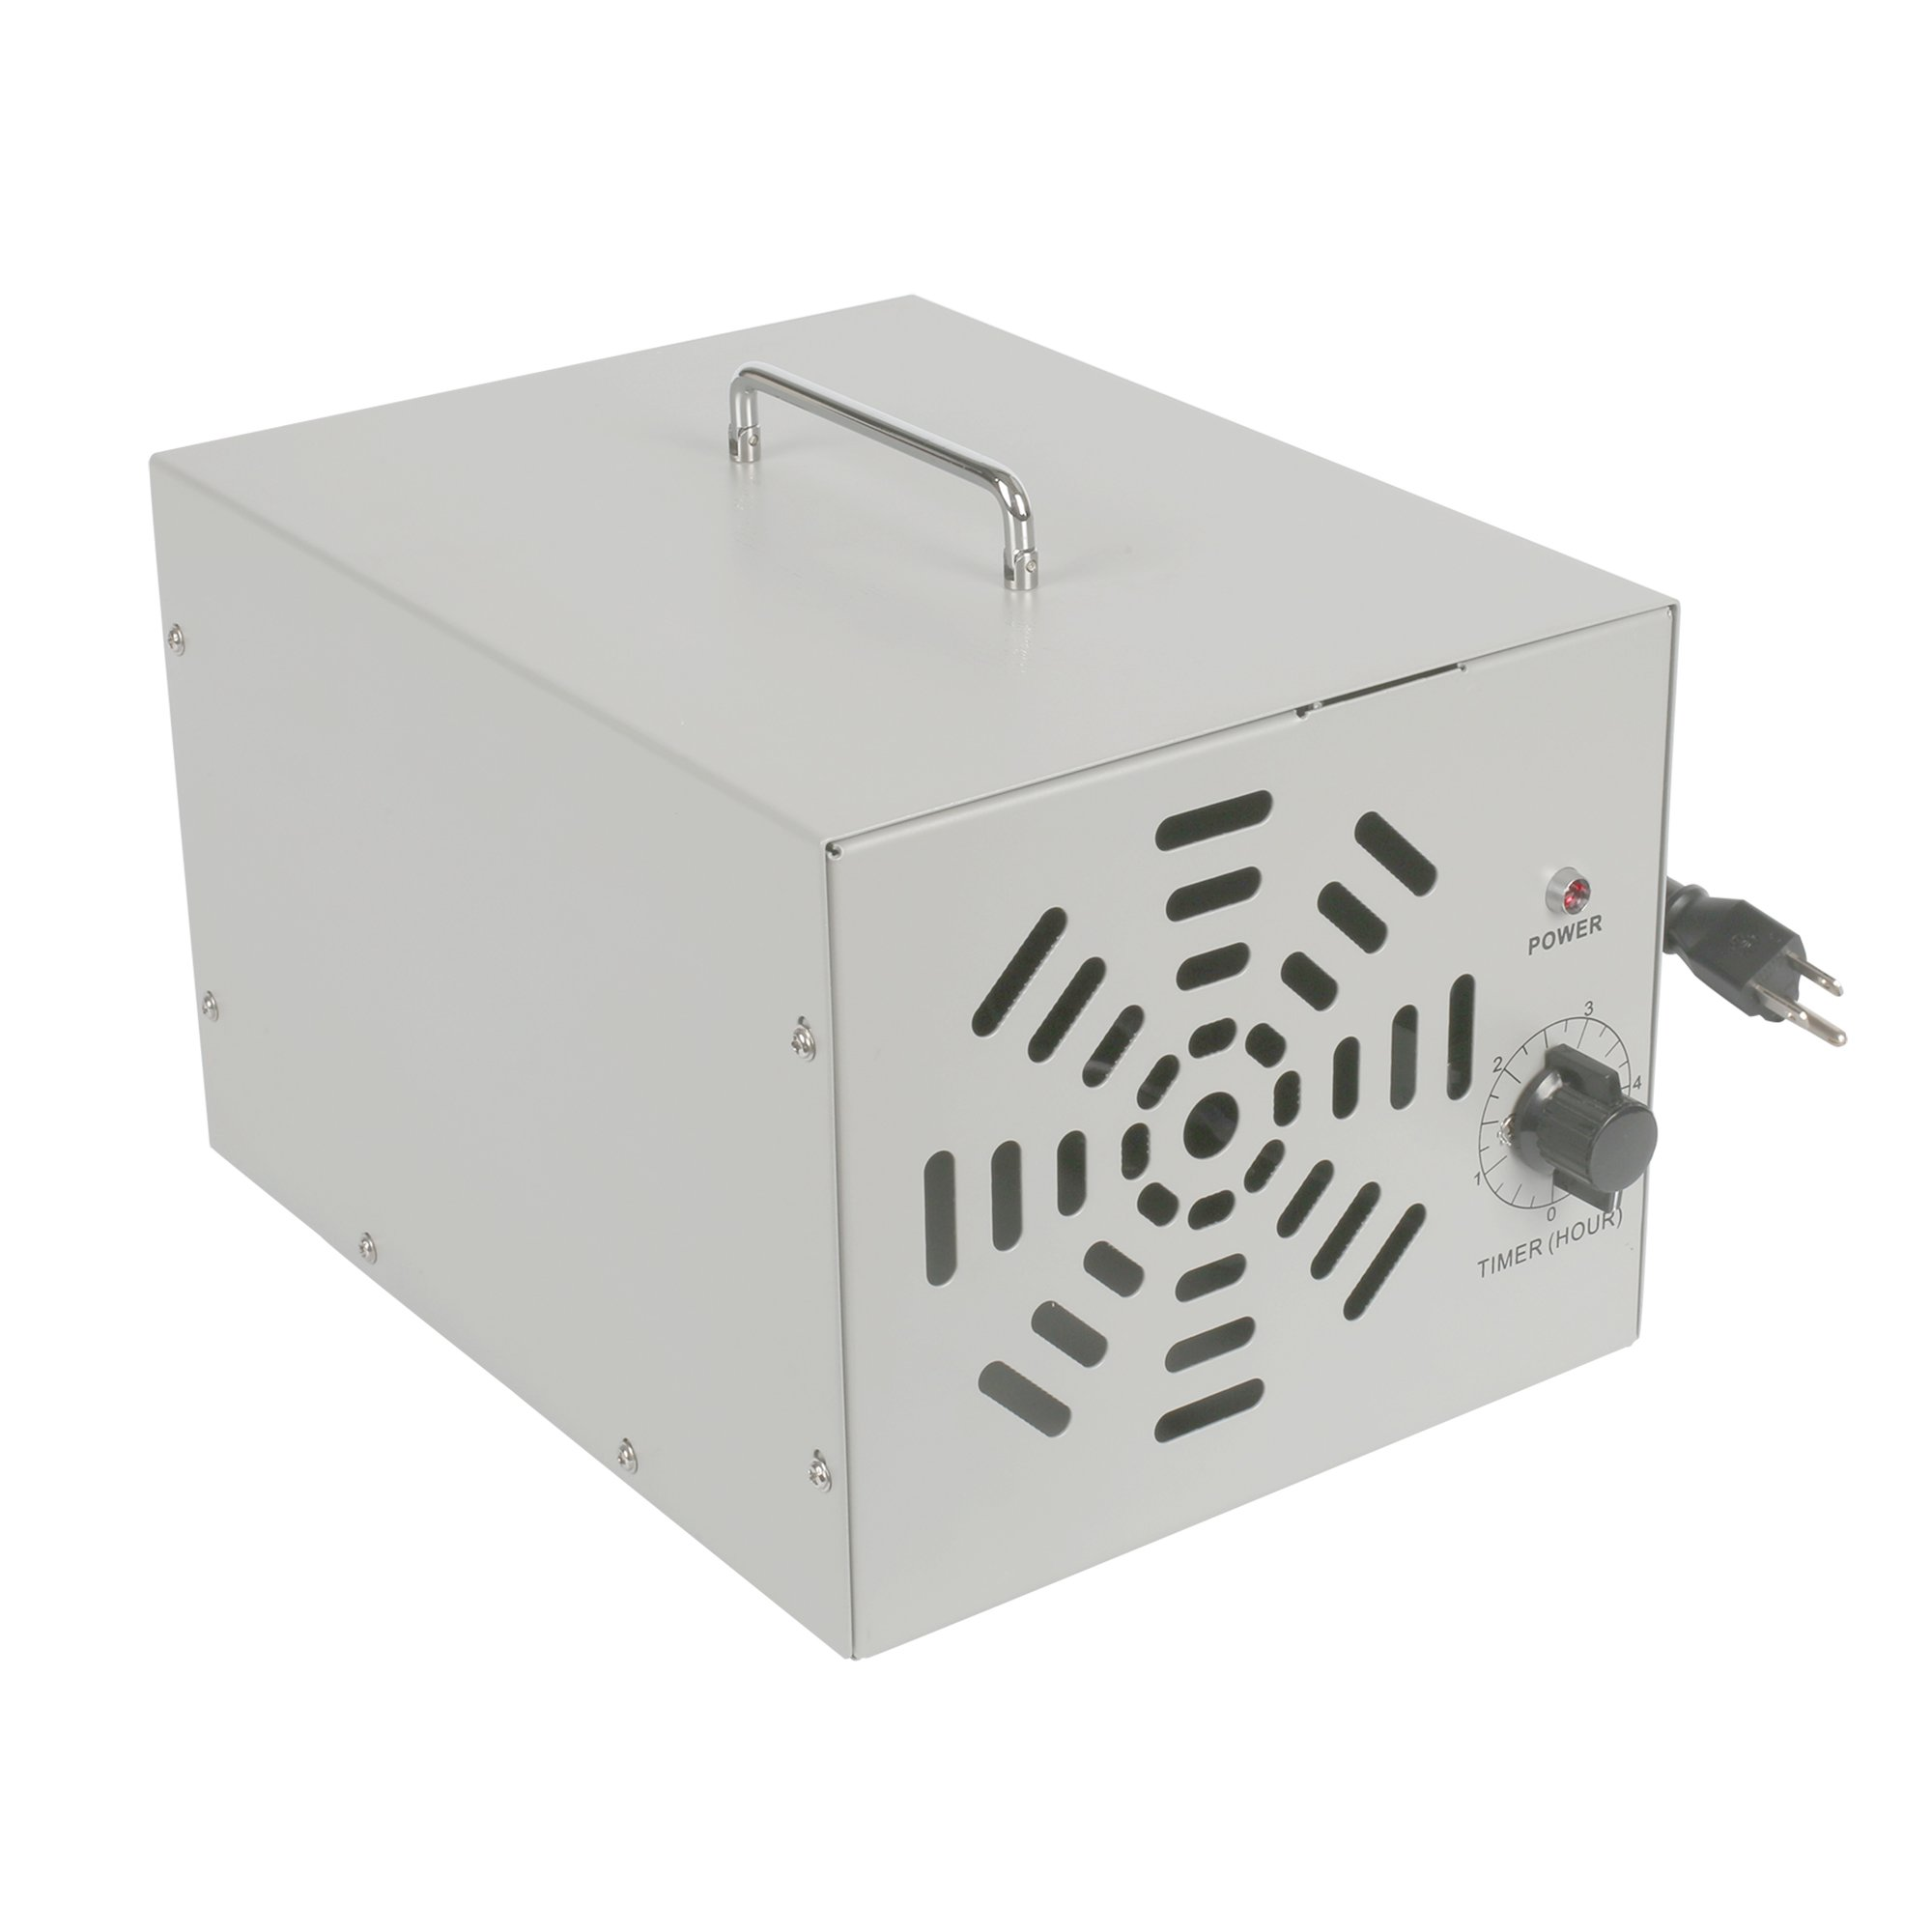 A2Z Ozone Air-7000 Air Ozone Generator Natural Deodorizer | Mold Remediation | Allergies | 0 to 4-Hour Hands-Free Timer